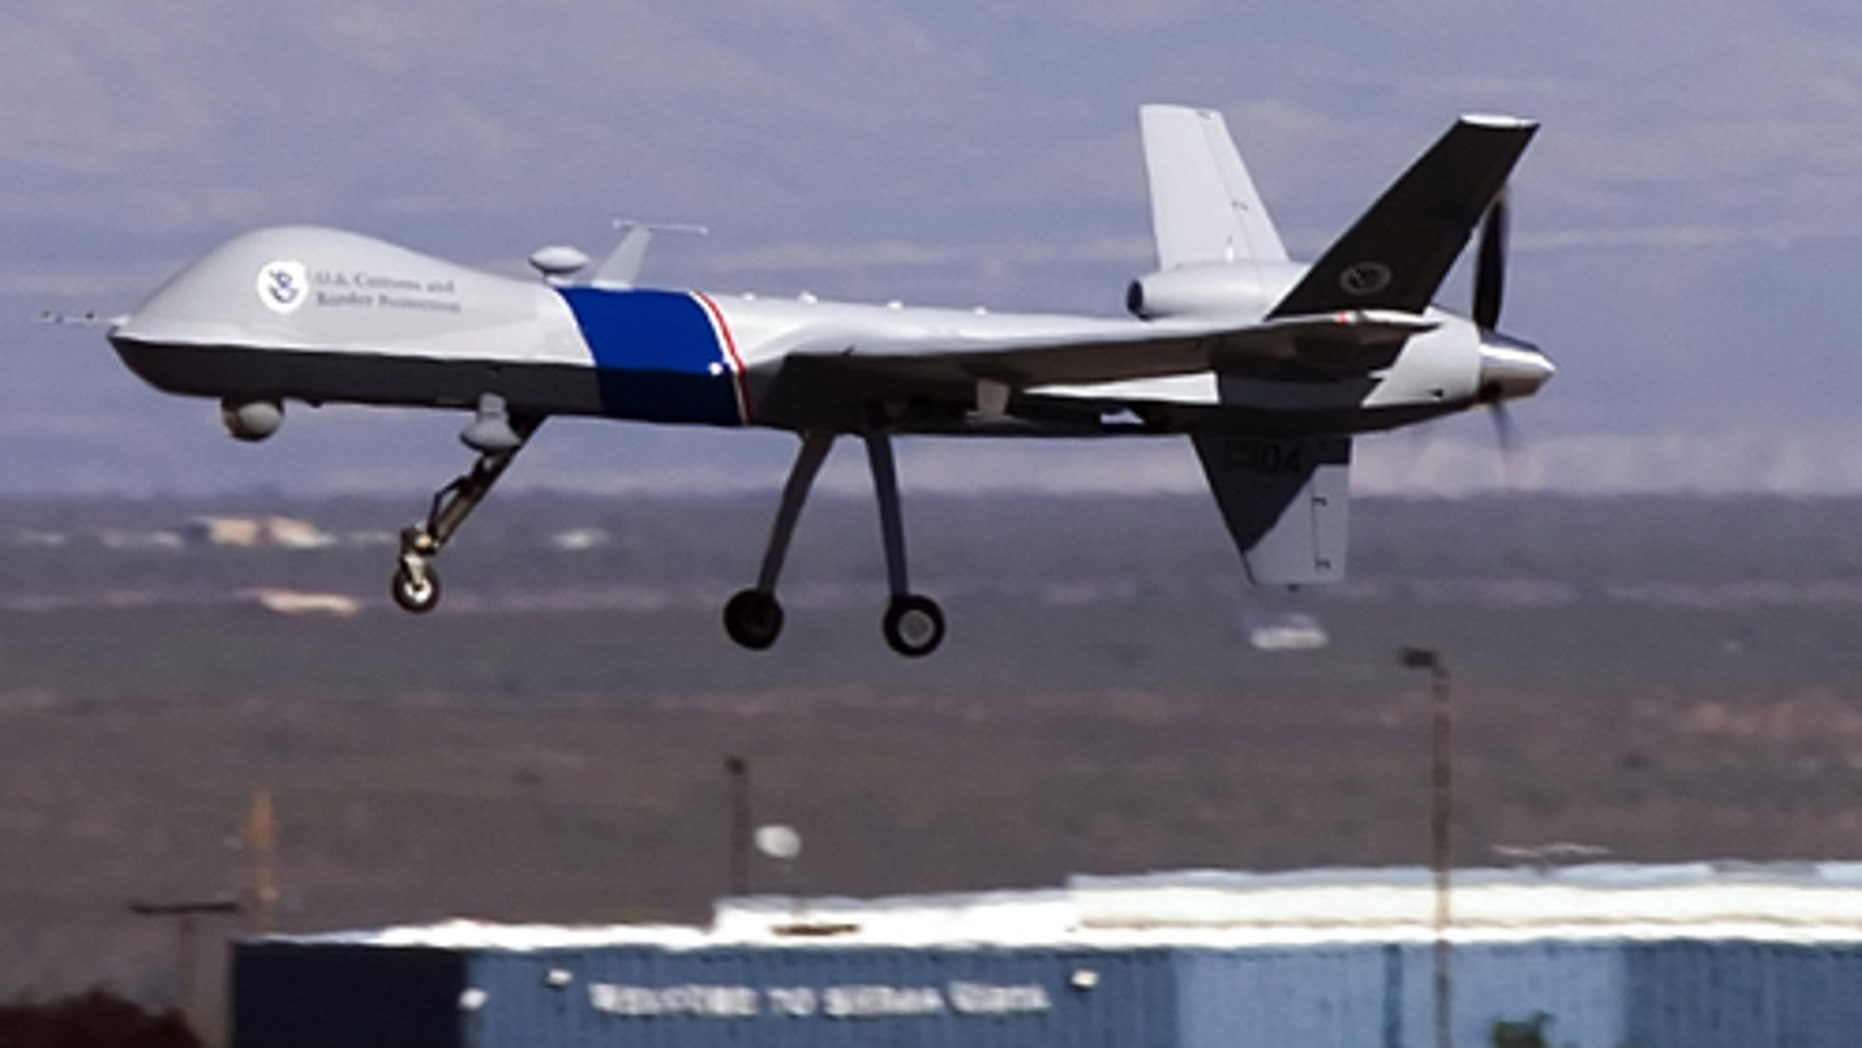 SIERRA VISTA, AZ - OCTOBER 30:  The new MQ-9 Predator B, an unmanned surveillance aircraft system, unveiled by the U.S. Customs and Border Protection (CBP), takes off at Libby Army Airfield at Ft. Huachuca October 30, 2006 in Sierra Vista, Arizona. CBP will use the new MQ-9 Predator aircraft to patrol the southern border of the United Sates in order to stop the illegal entry of thousands of Mexican nationals and drug runners who use the vast expanses of the Sonoran desert to cross into southern Arizona, daily. The new unarmed plane flew briefly for the press to show off its surveillance  capabilities by pilots of the contractor, General Atomics Aeronautical Systems. Agents of CBP will start training on the use of the aircraft very soon. The Predator will start full scale flight operations along the Mexico-Arizona border today.  (Photo by Gary Williams/Getty Images)